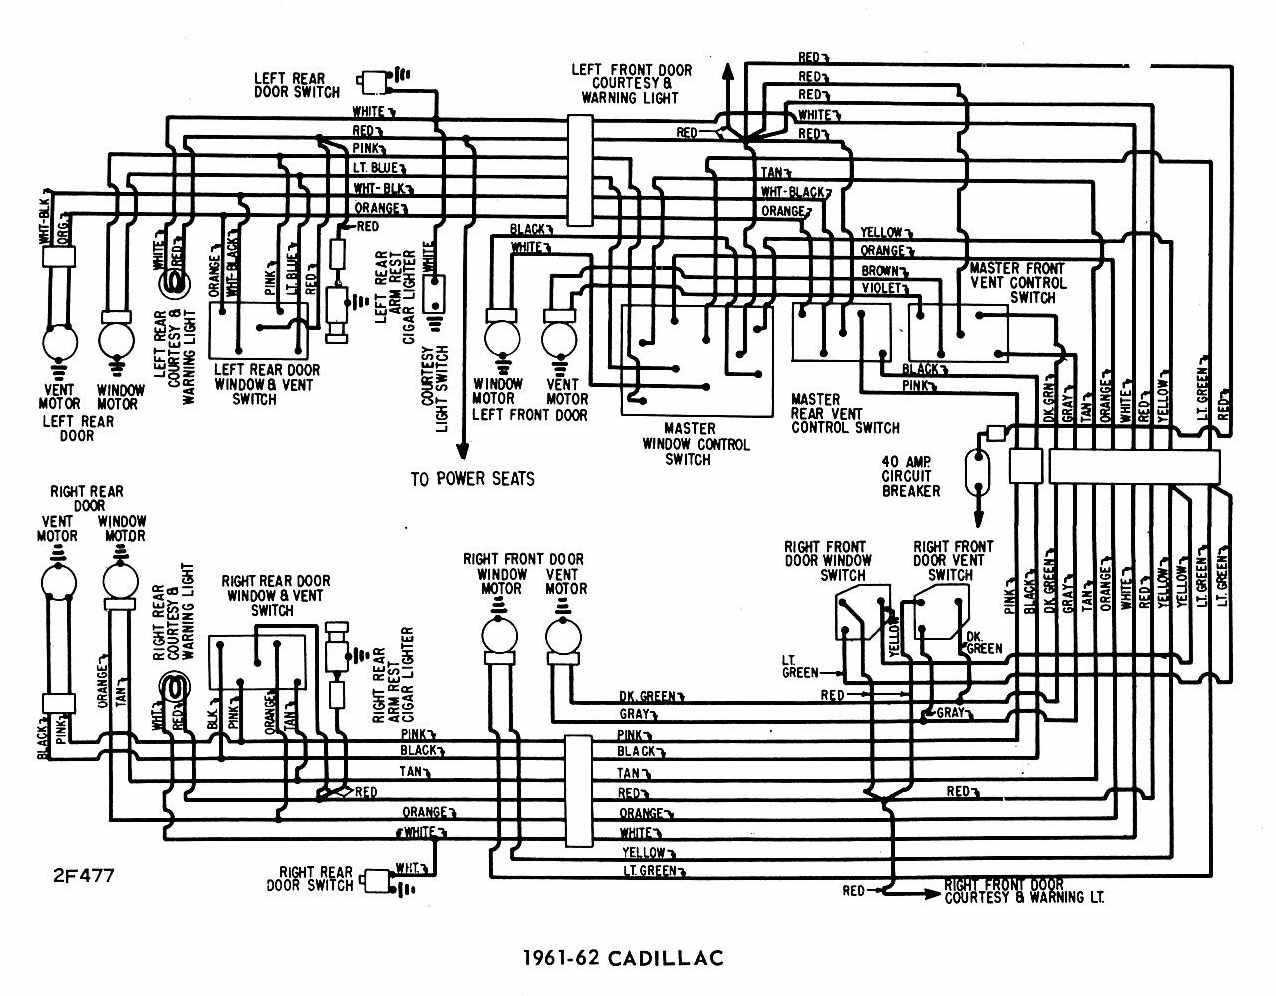 Gmc Envoy Wire Diagram Simple Guide About Wiring 2003 Radio Cadillac 1961 1962 Windows All